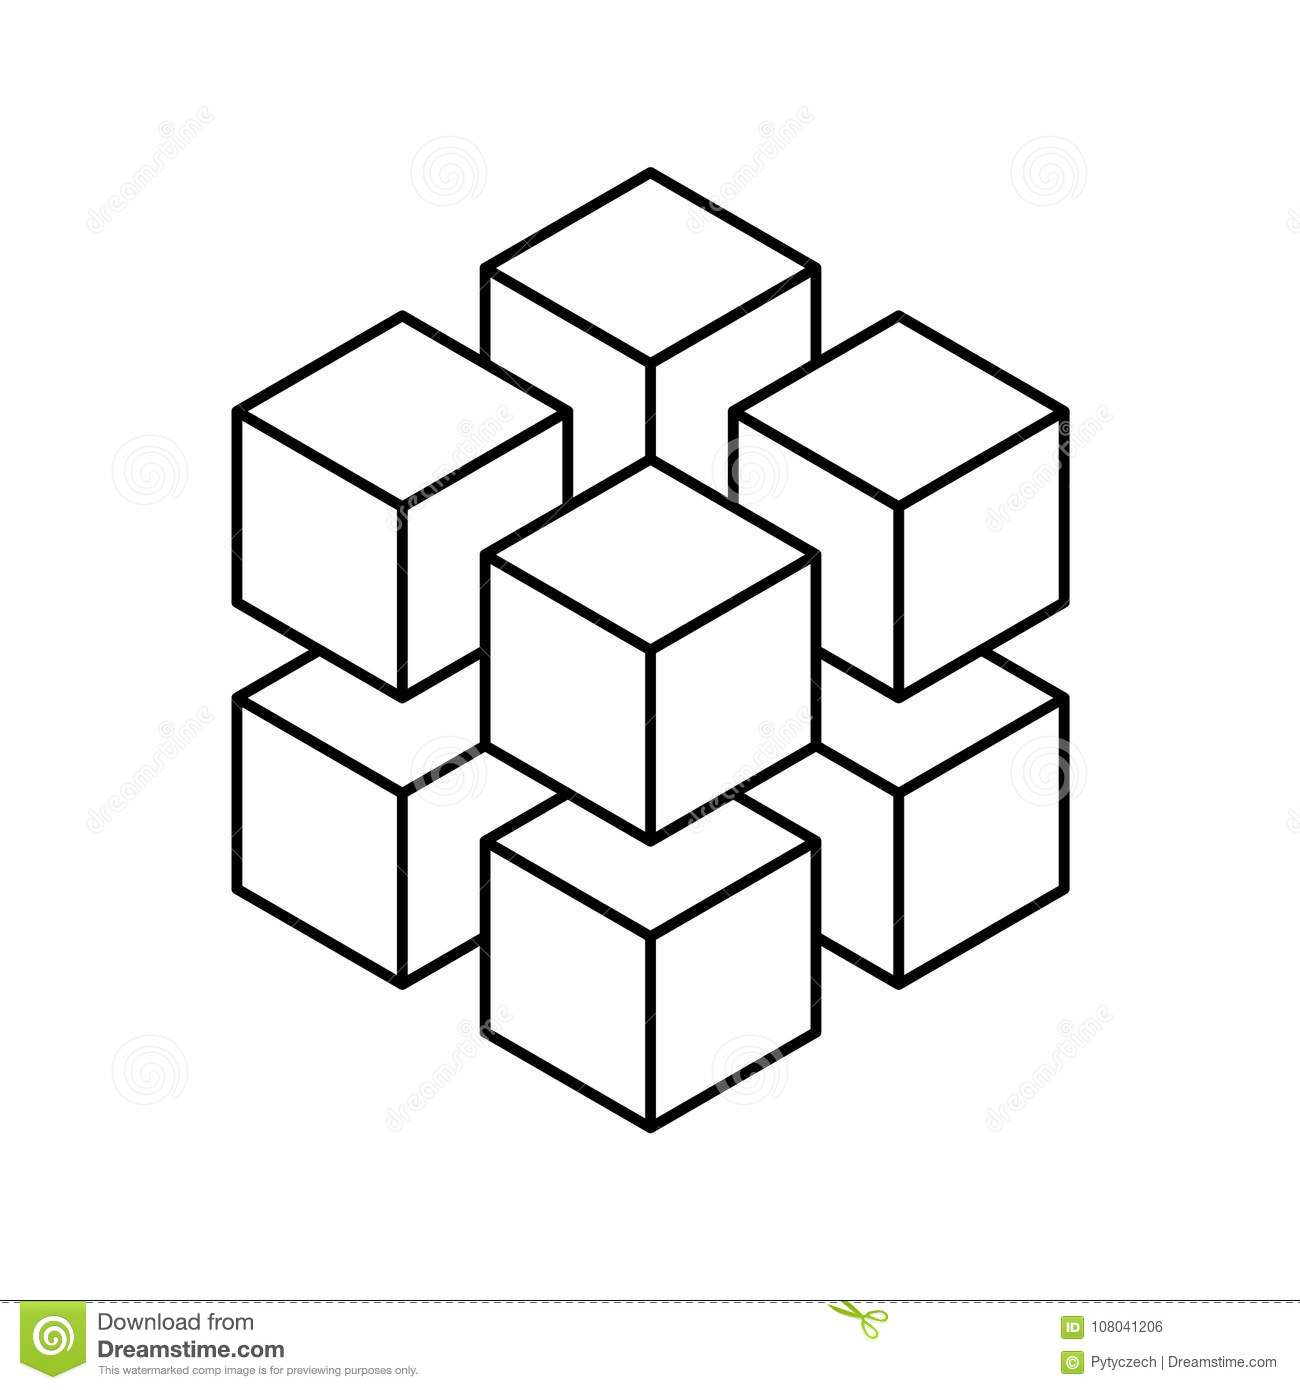 Geometric Cube Of 8 Smaller Isometric Cubes Abstract